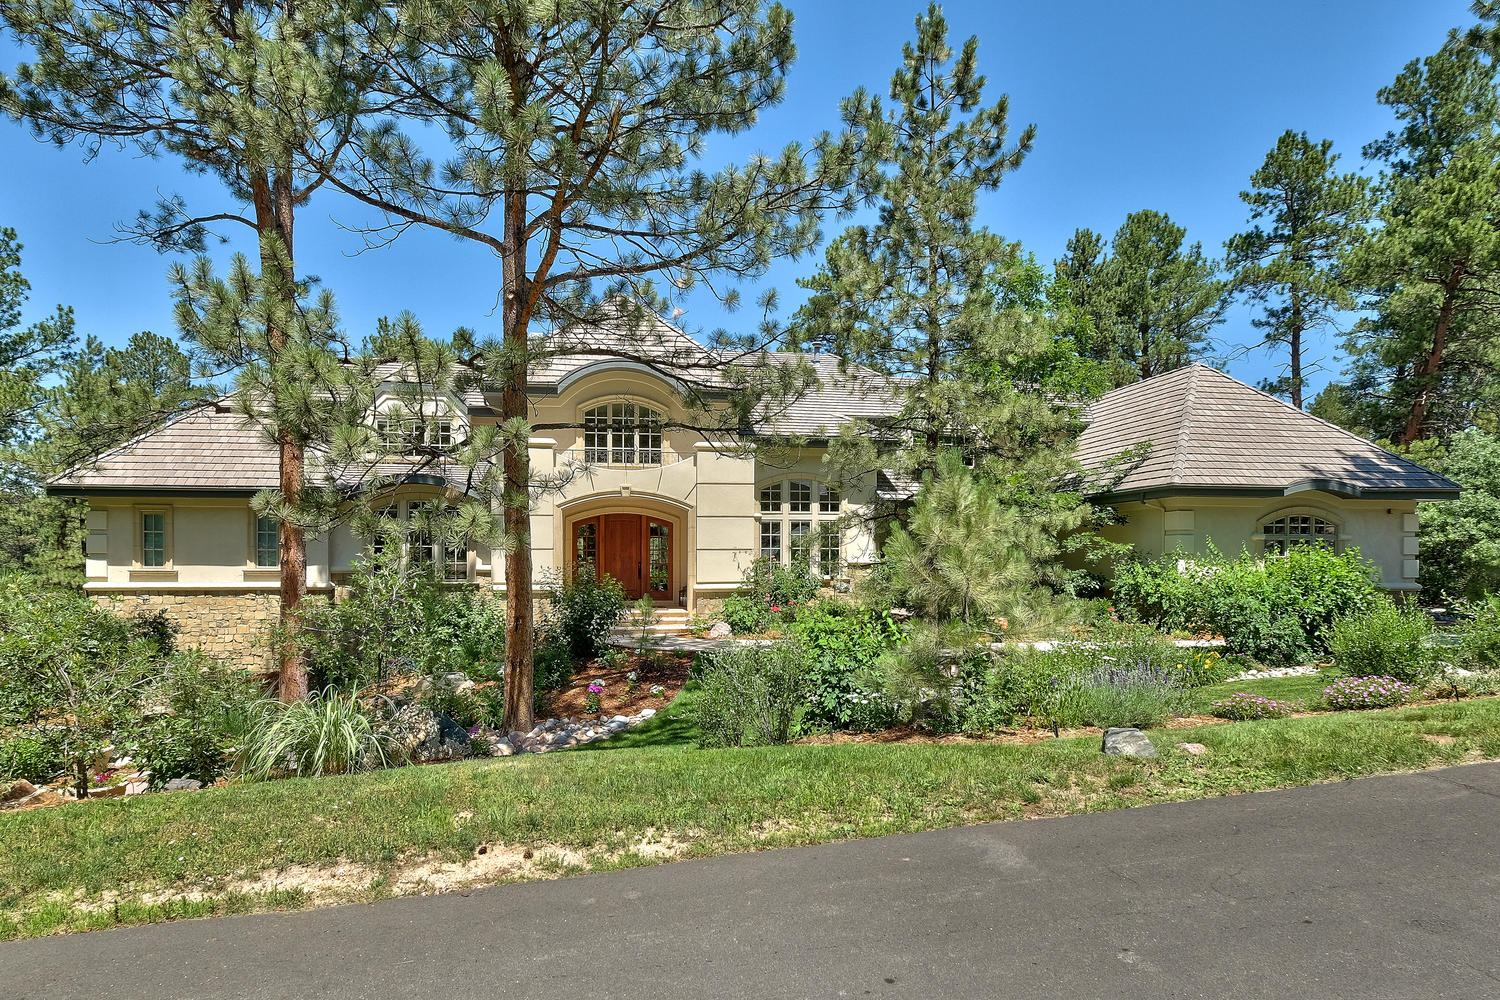 323 Paragon Way, Castle Rock, CO. Listed by LIV Sotheby's International Realty for $2,990,000.